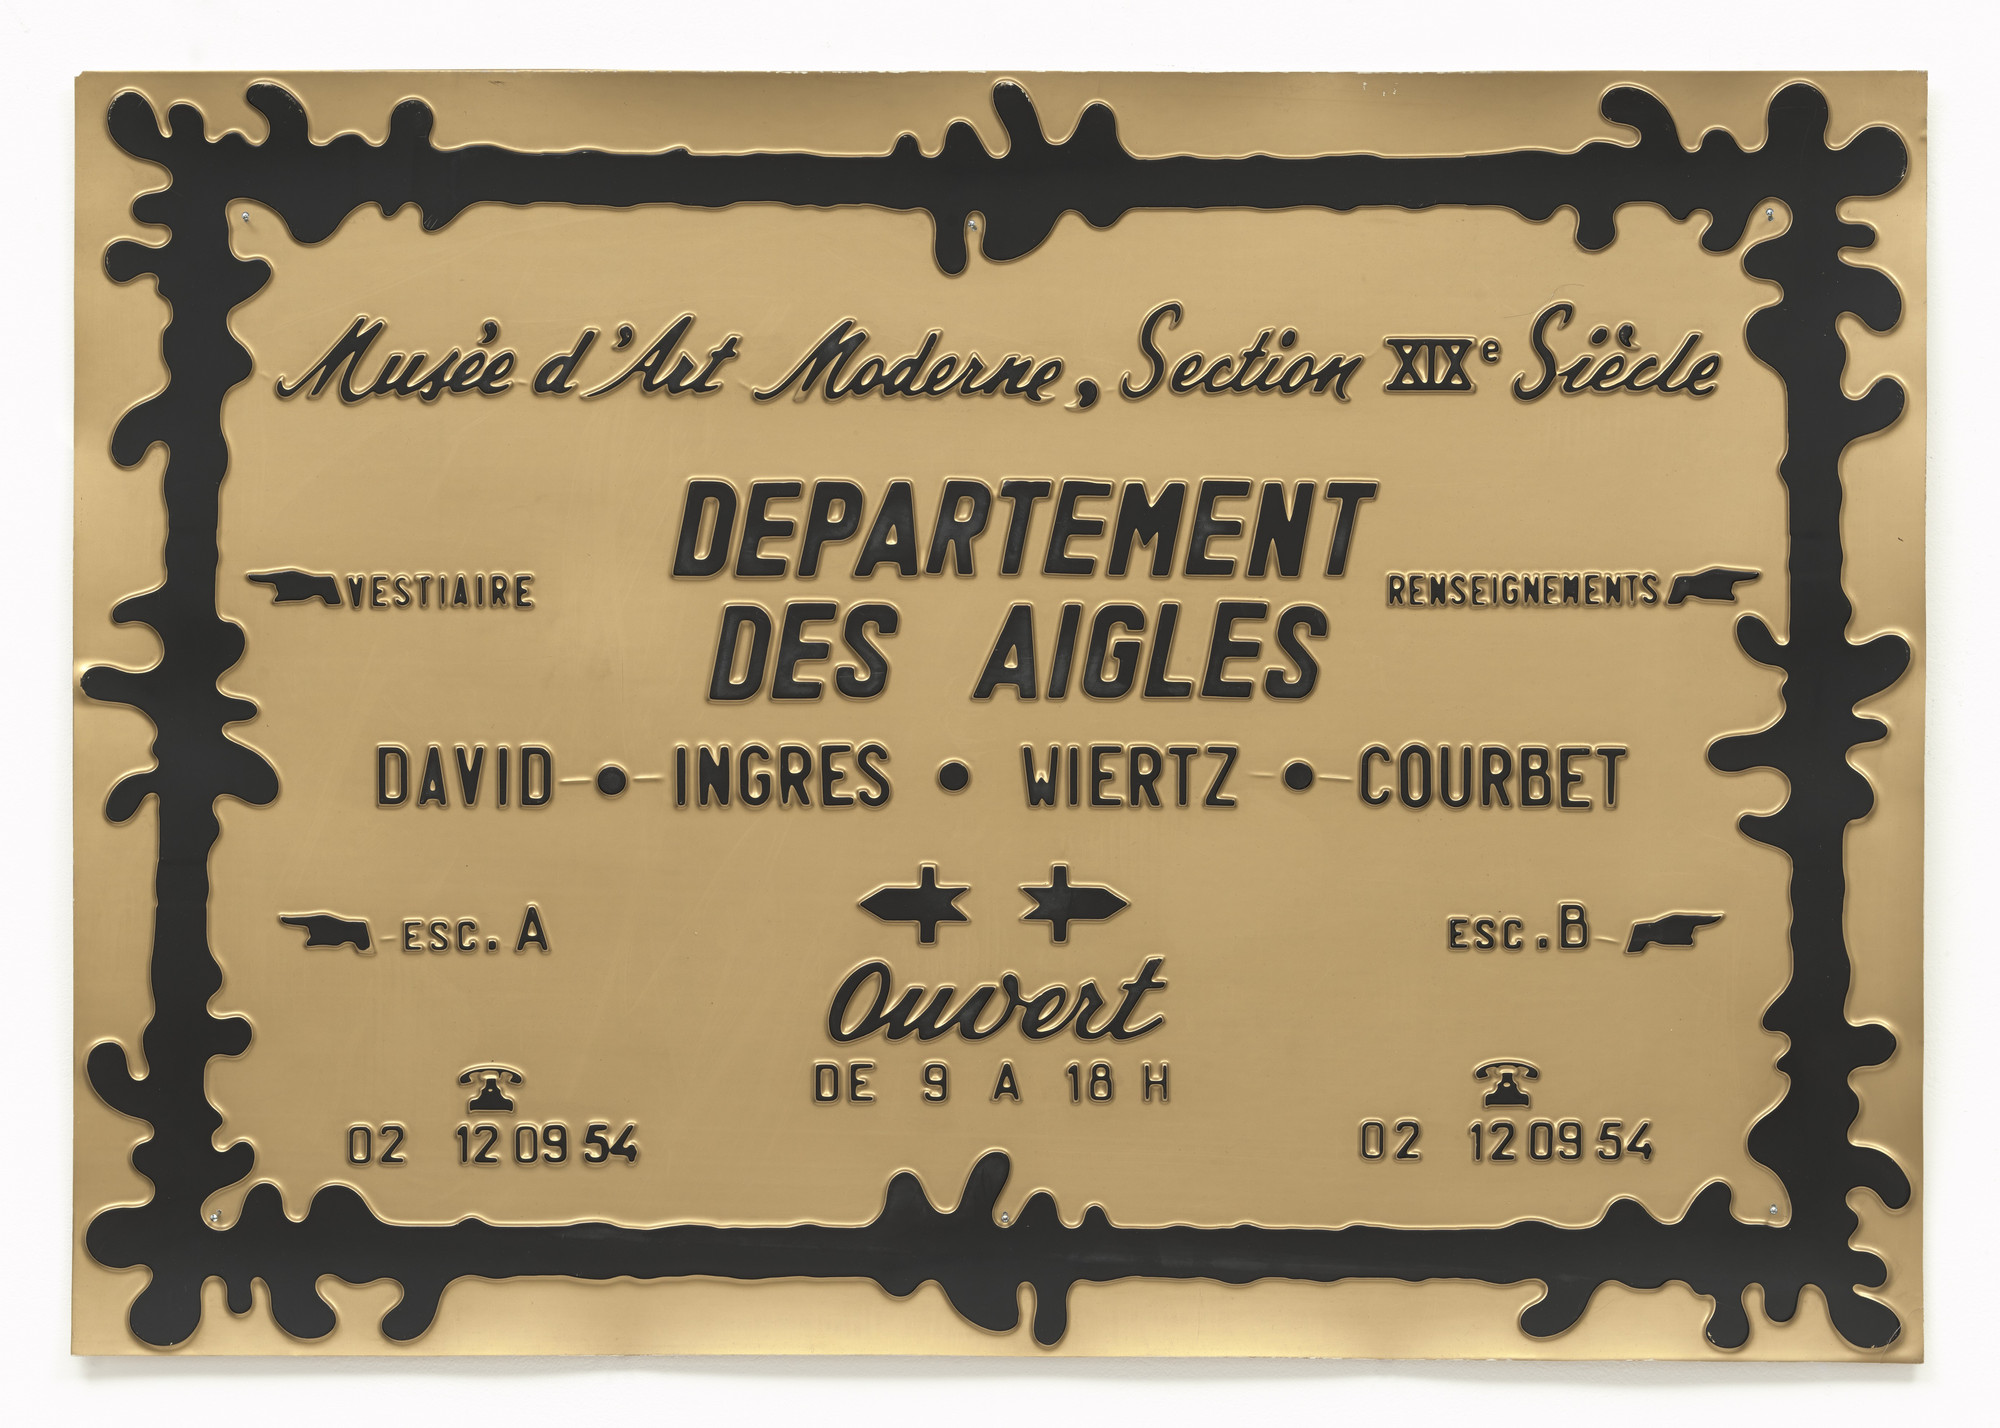 Marcel Broodthaers. Department of Eagles (David - Ingres - Wiertz - Courbet) (Département des Aigles [David - Ingres - Wiertz - Courbet]). 1968